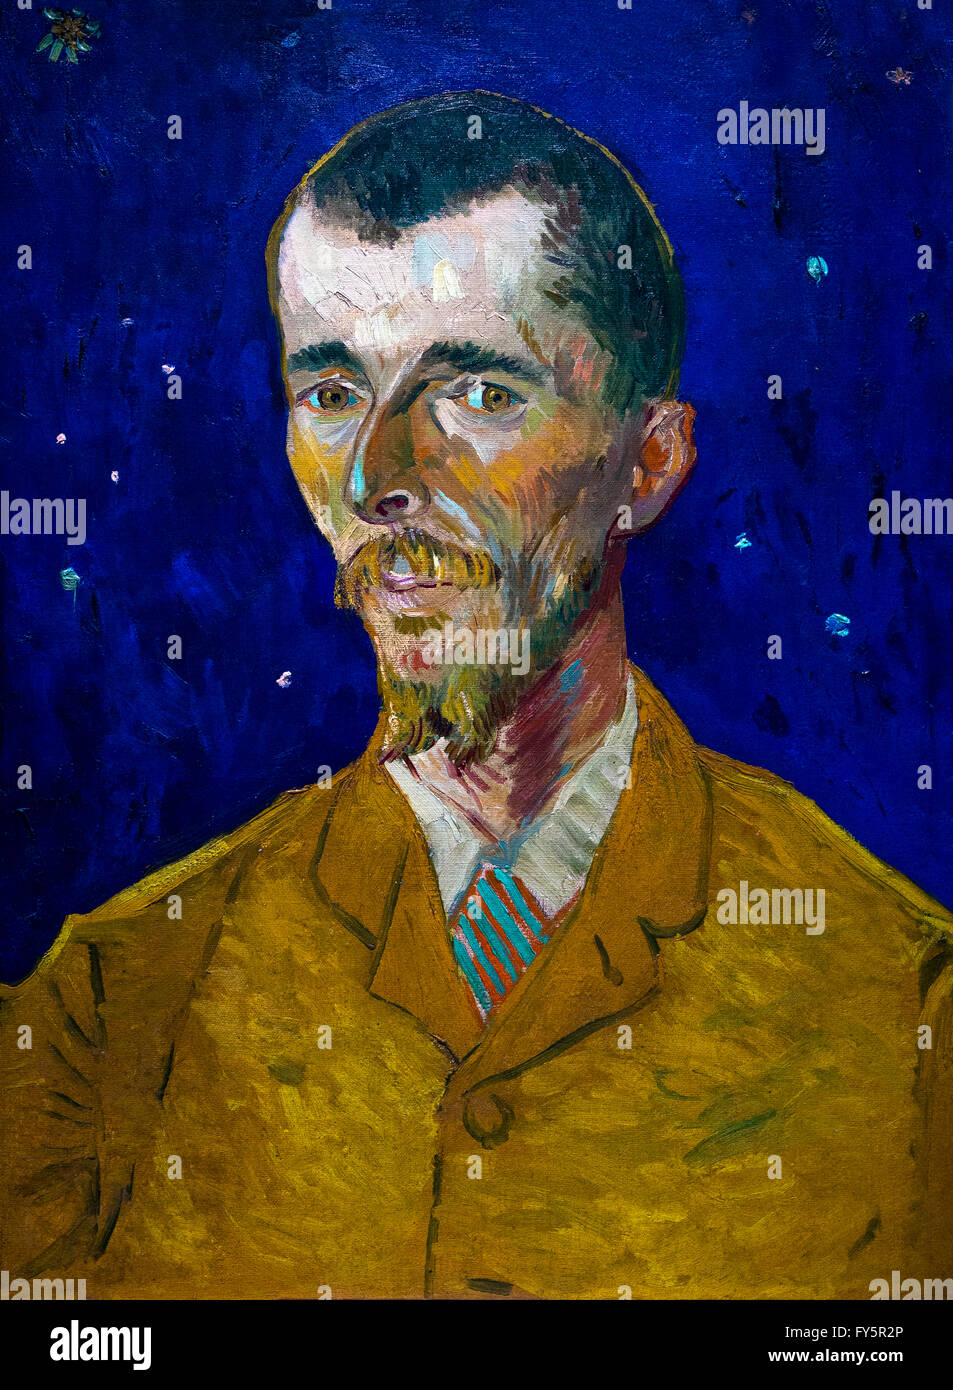 Eugene Boch by Vincent van Gogh, 1888, Musee D'Orsay, Paris, France, Europe - Stock Image